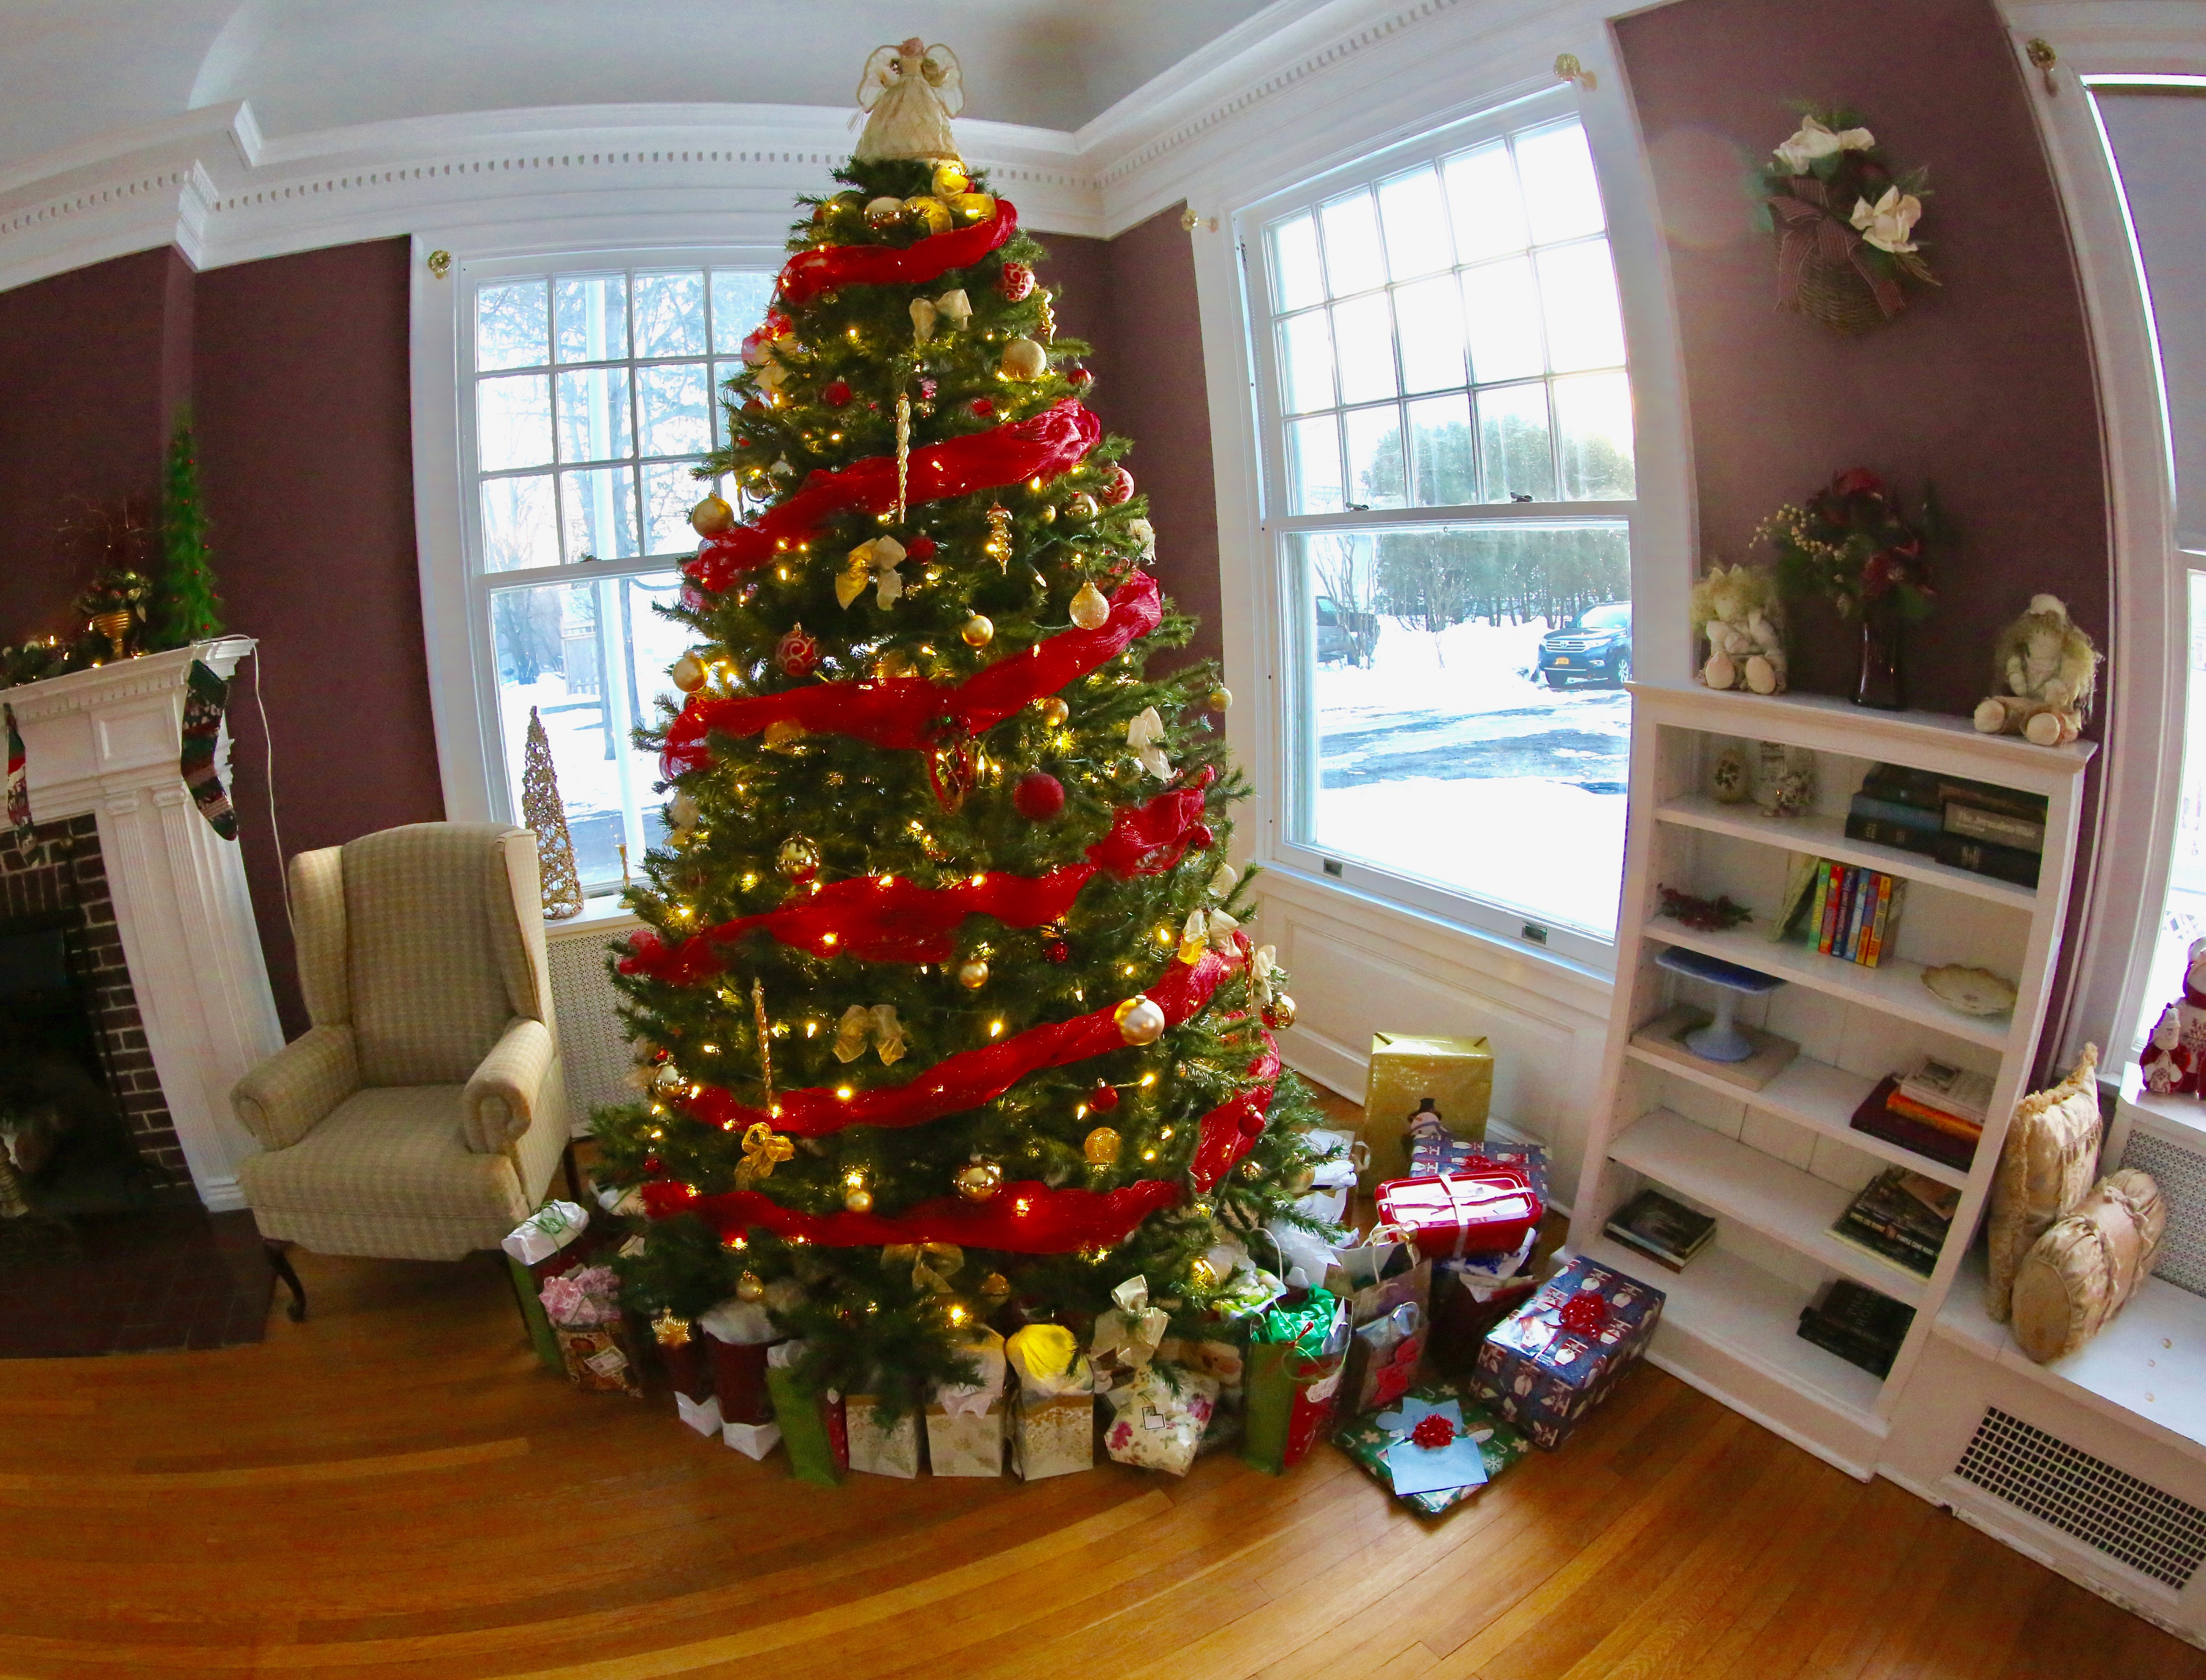 The Mansion Christmas Journal: Your Presents Under The Tree - Bedlam ...